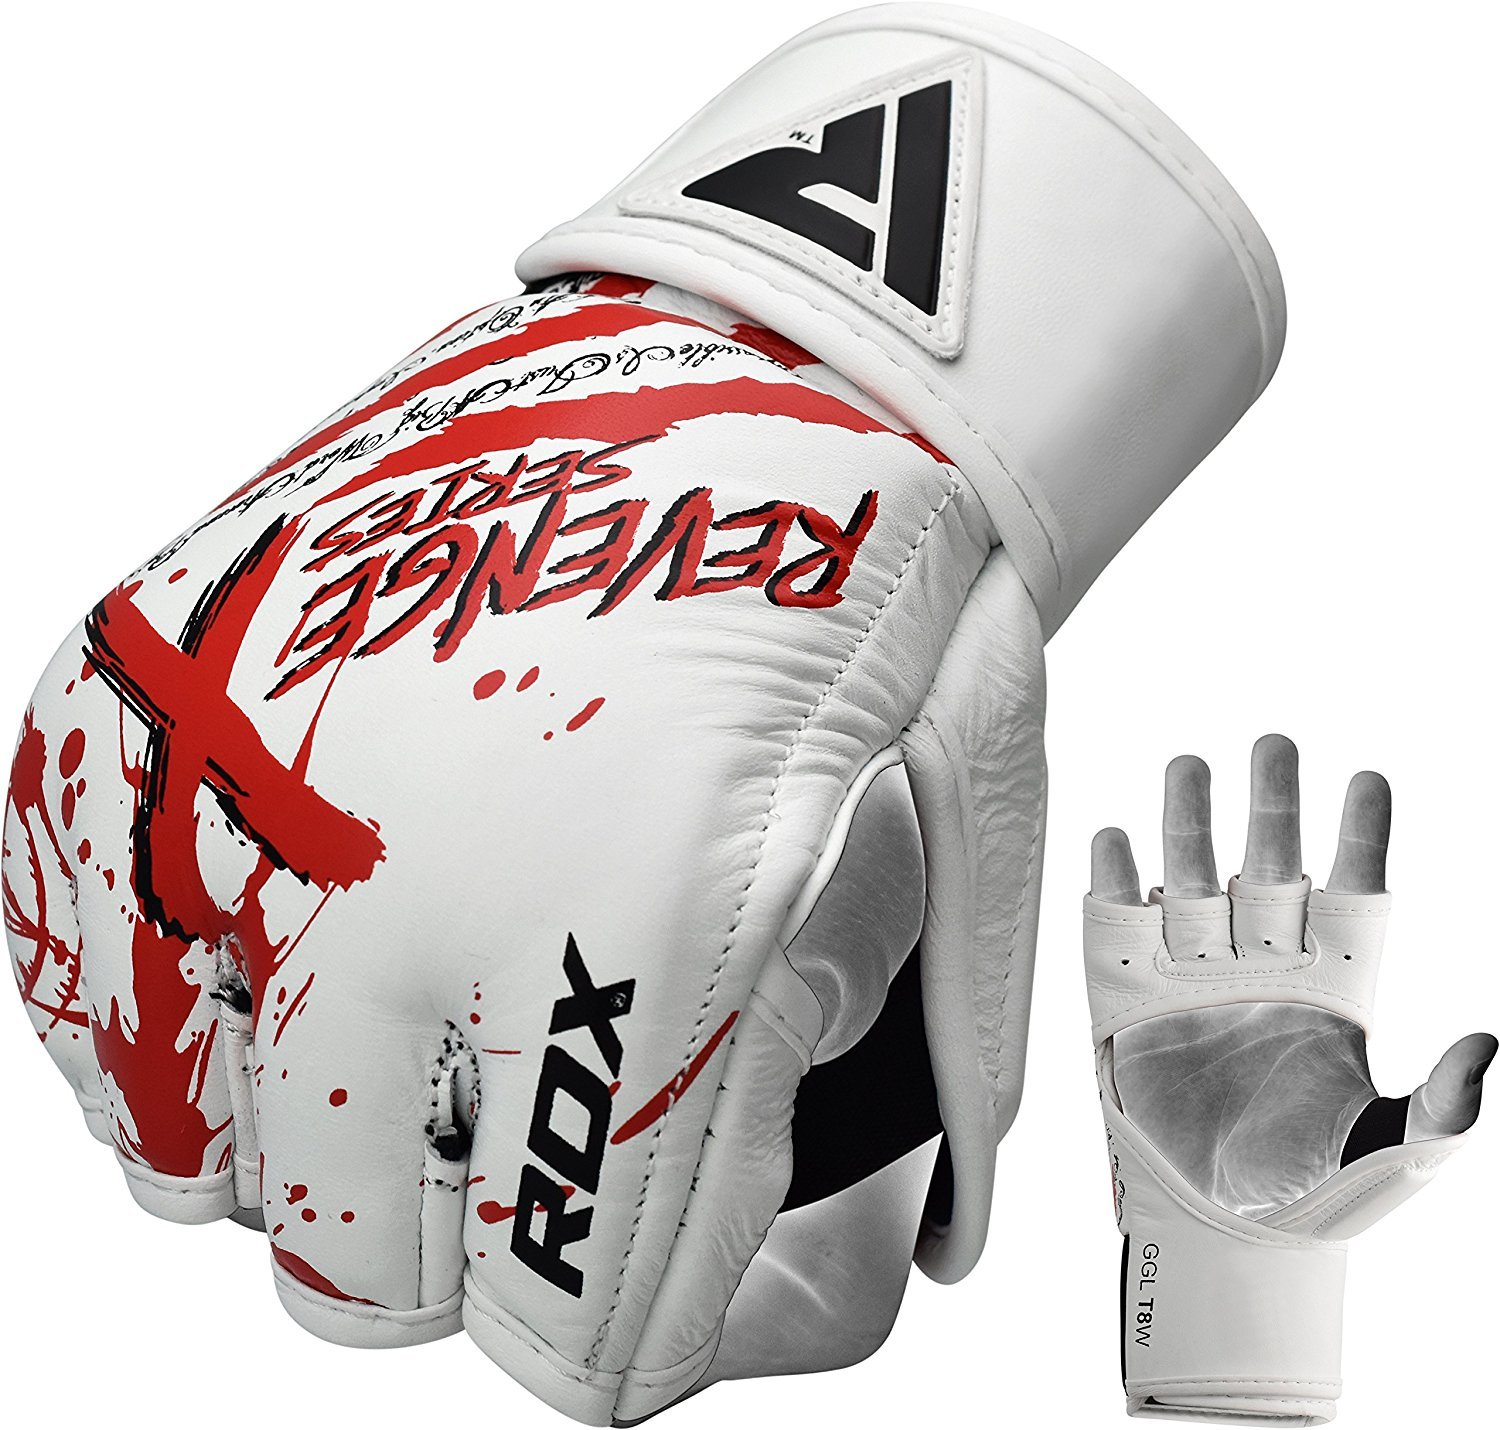 RDX MMA Gloves Grappling Sparring Martial Arts Cowhide Leather Training Cage UFC Fighting Combat Punching Bag Gel Mitts